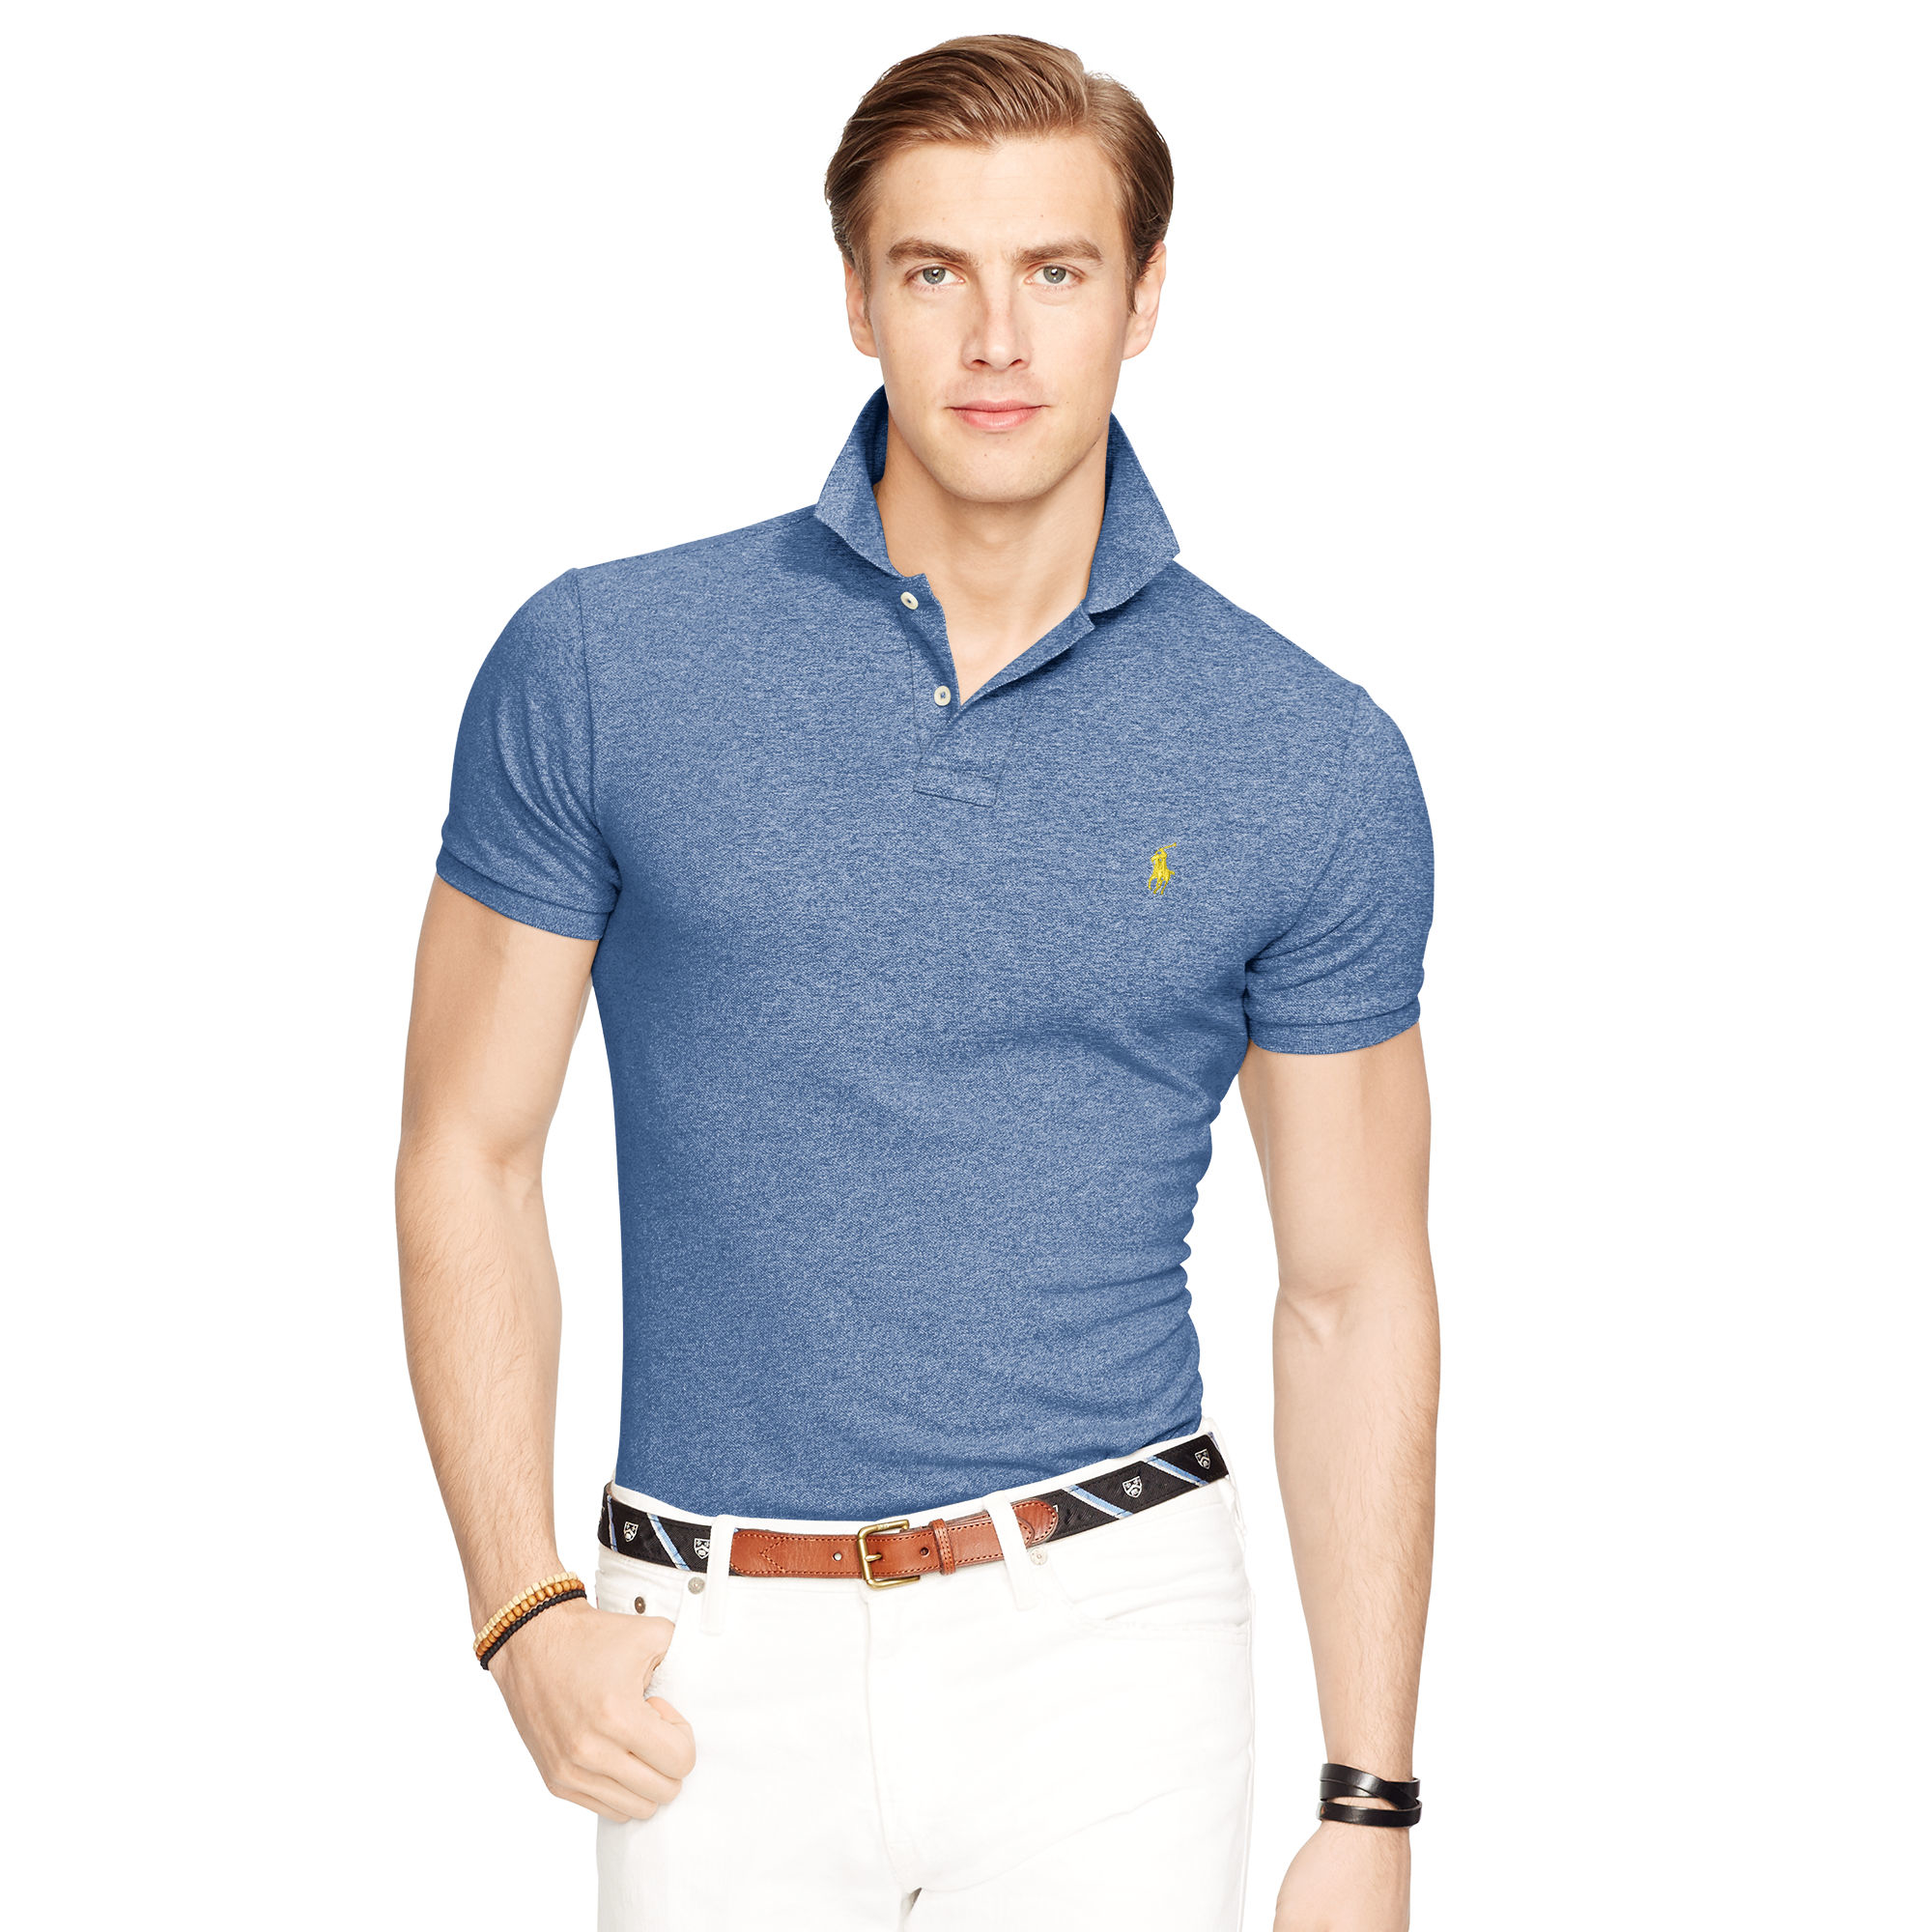 polo ralph lauren slim fit mesh polo shirt in blue for men. Black Bedroom Furniture Sets. Home Design Ideas